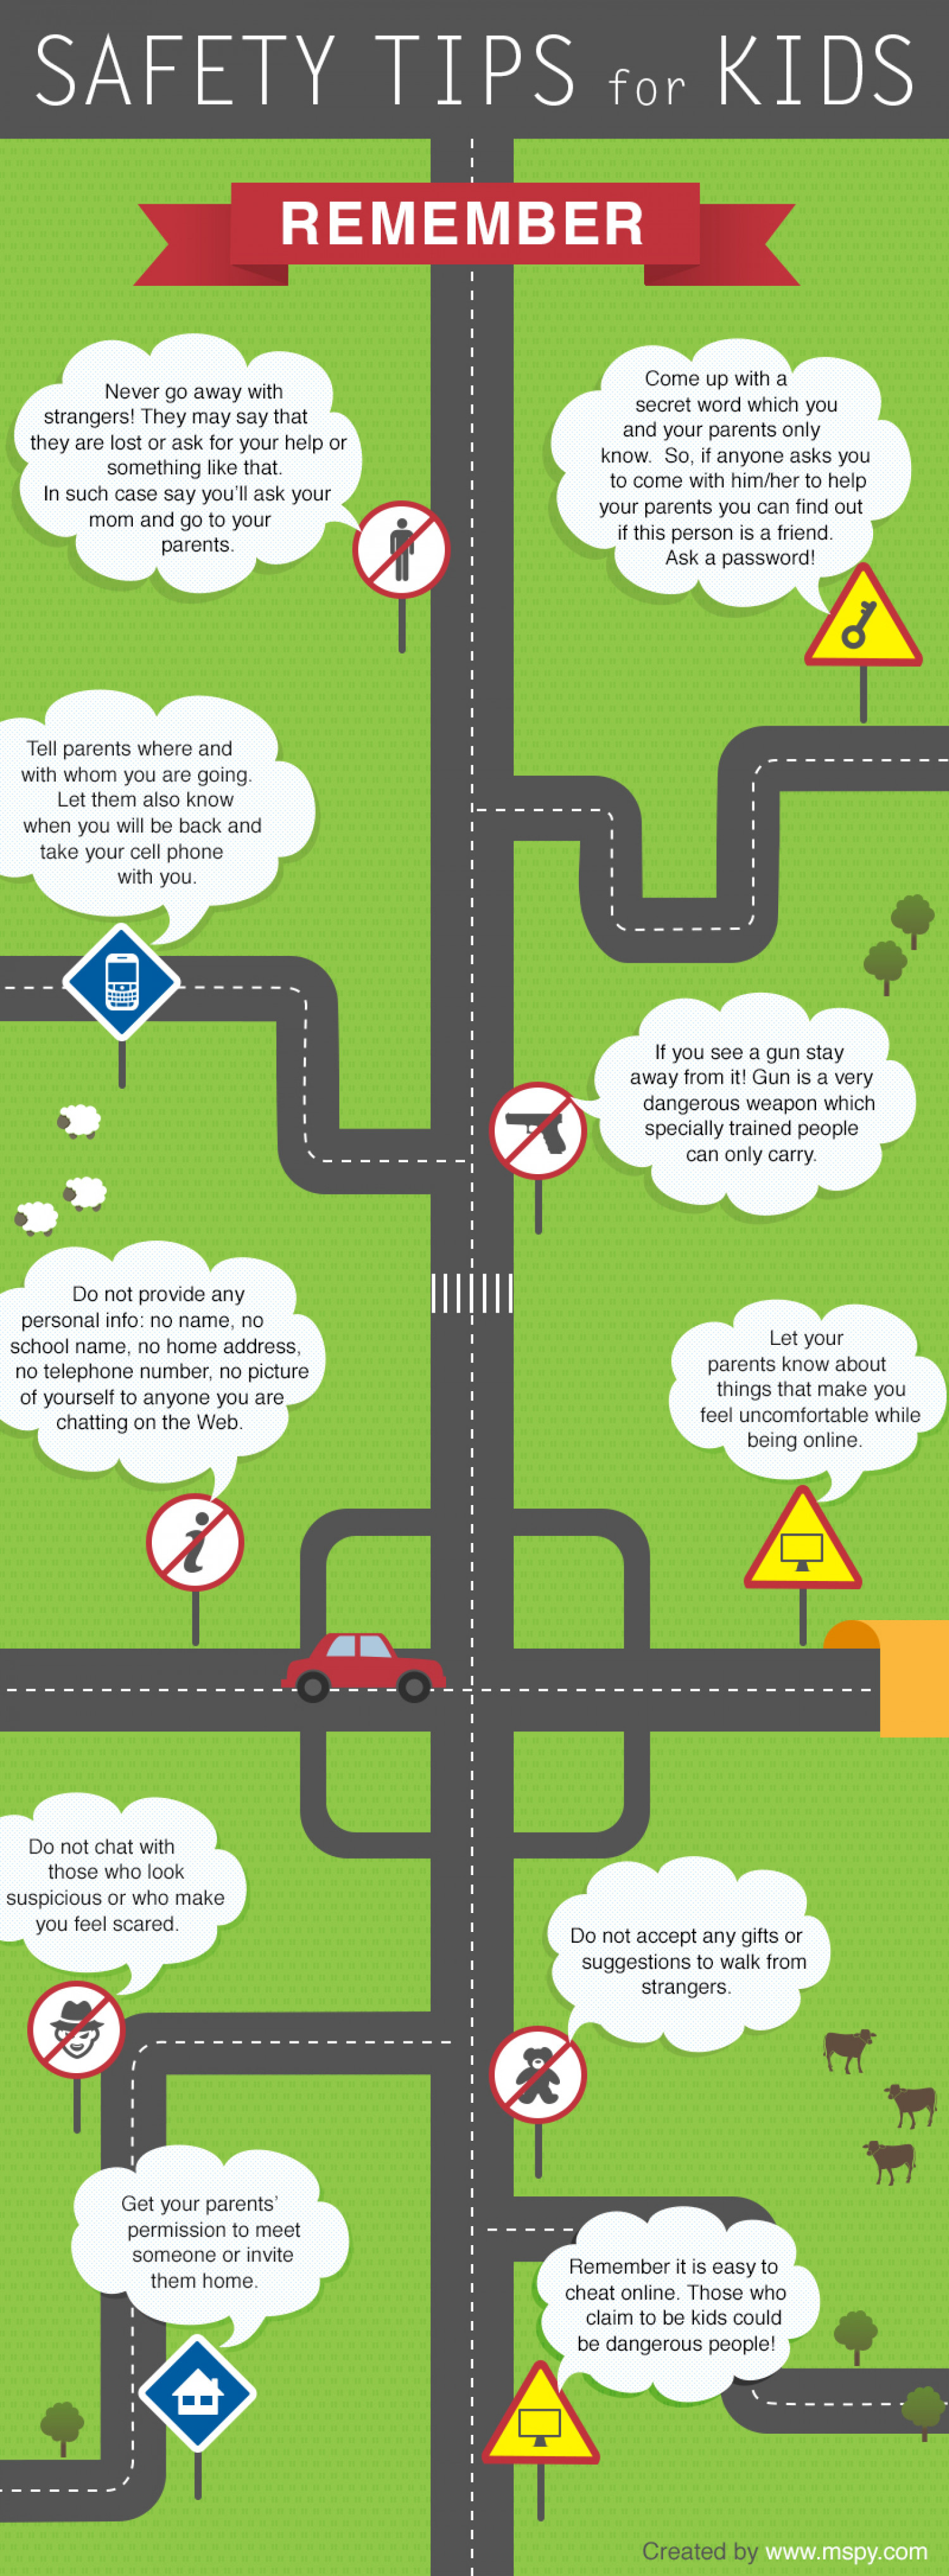 Safety Tips for Kids Infographic